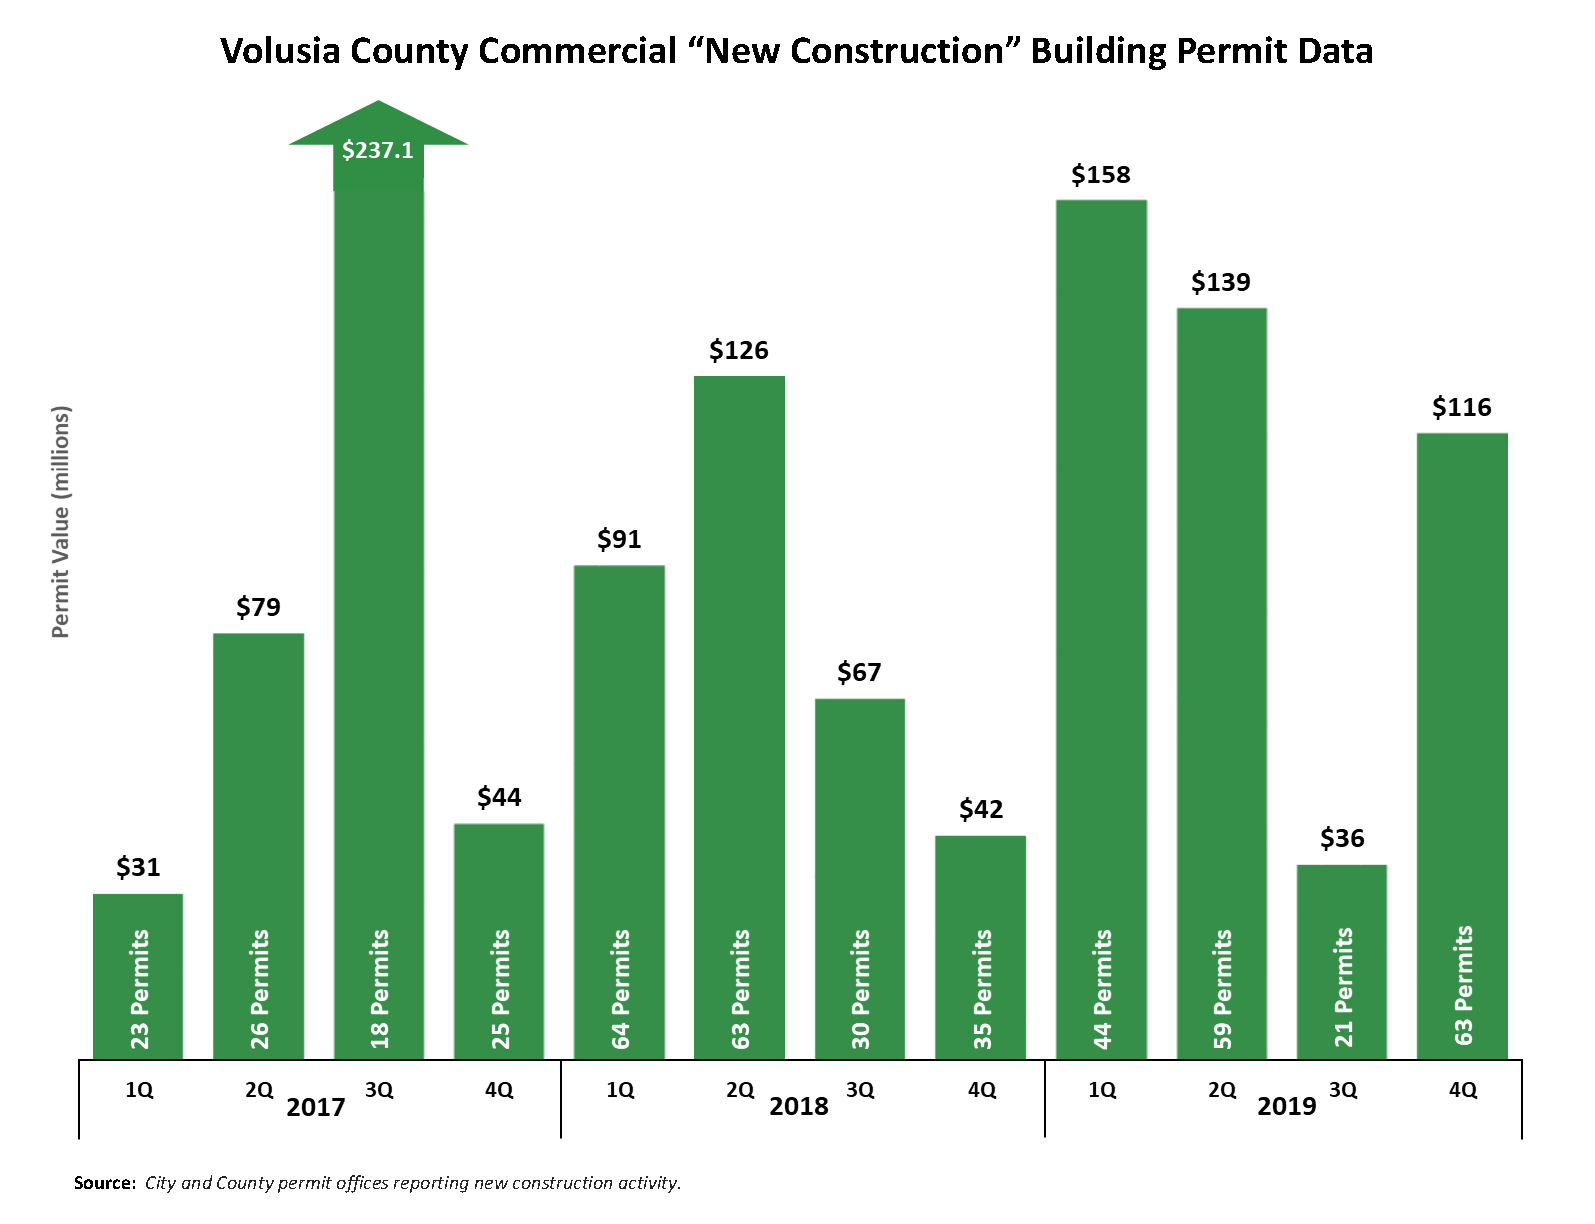 Commercial new construction building permits